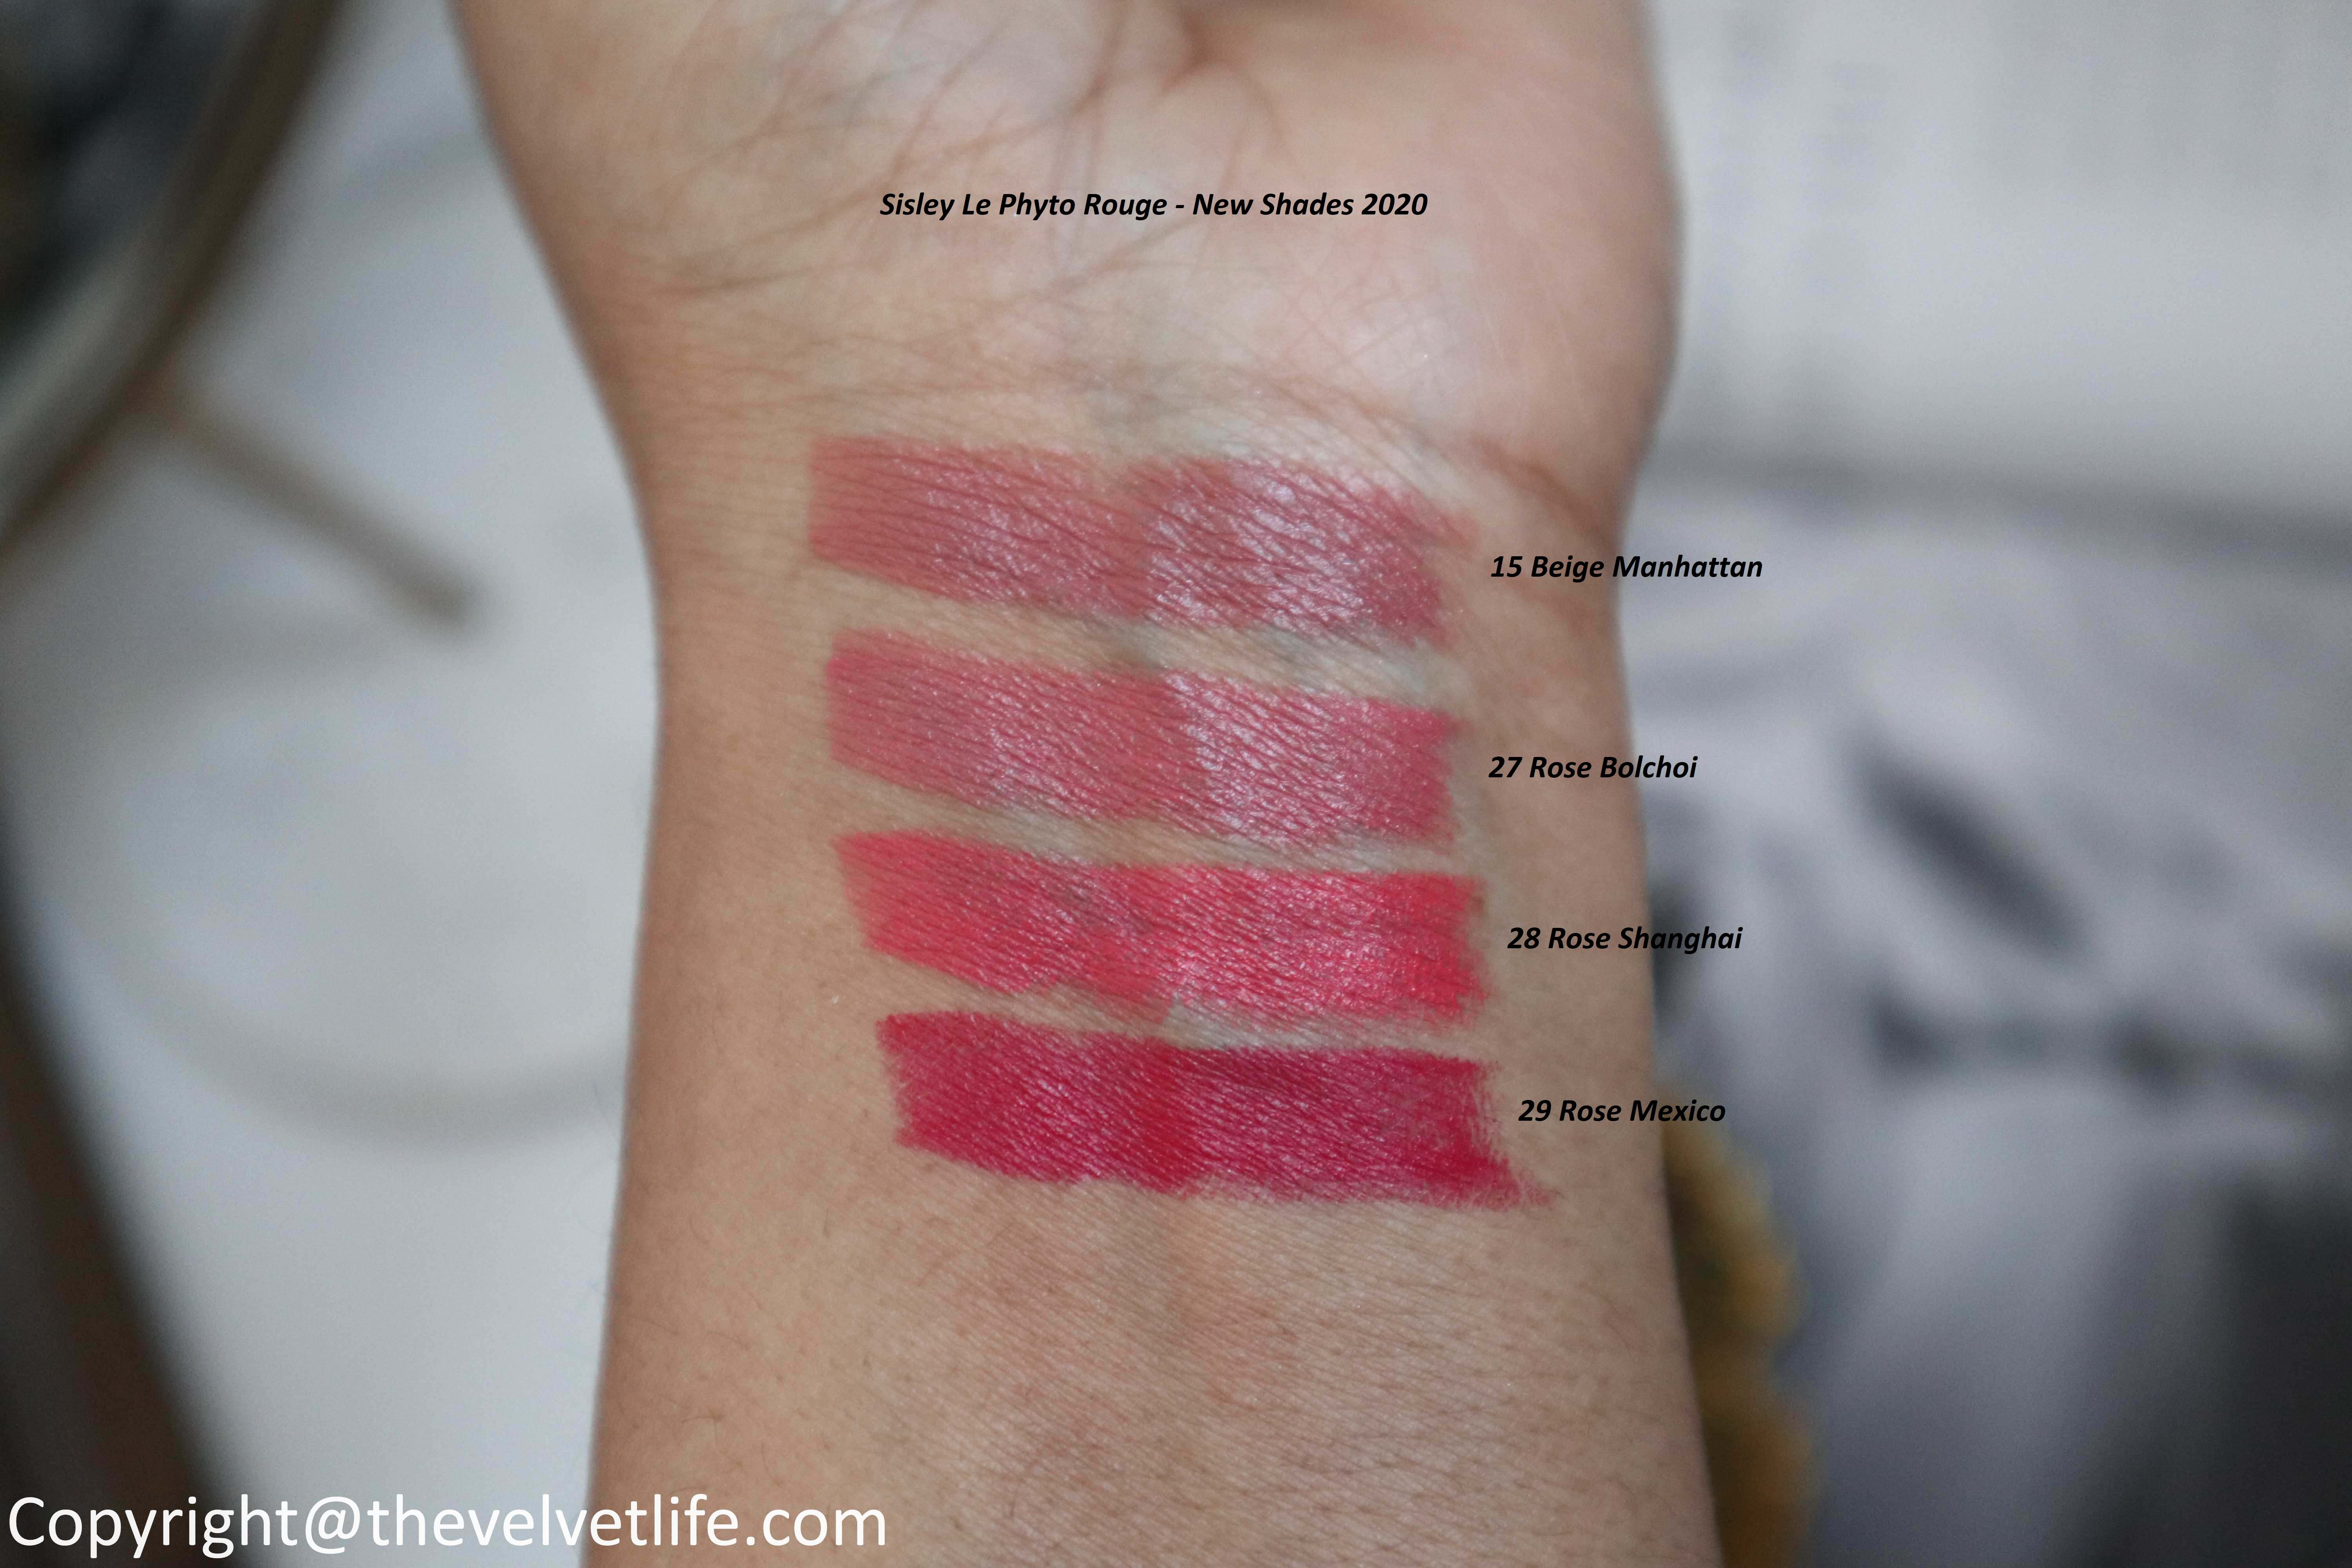 Sisley Le Phyto Rouge New review swatches 15 Beige Manhattan, 27 Rose Bolchoi, 28 Rose Shanghai, 29 Rose Mexico